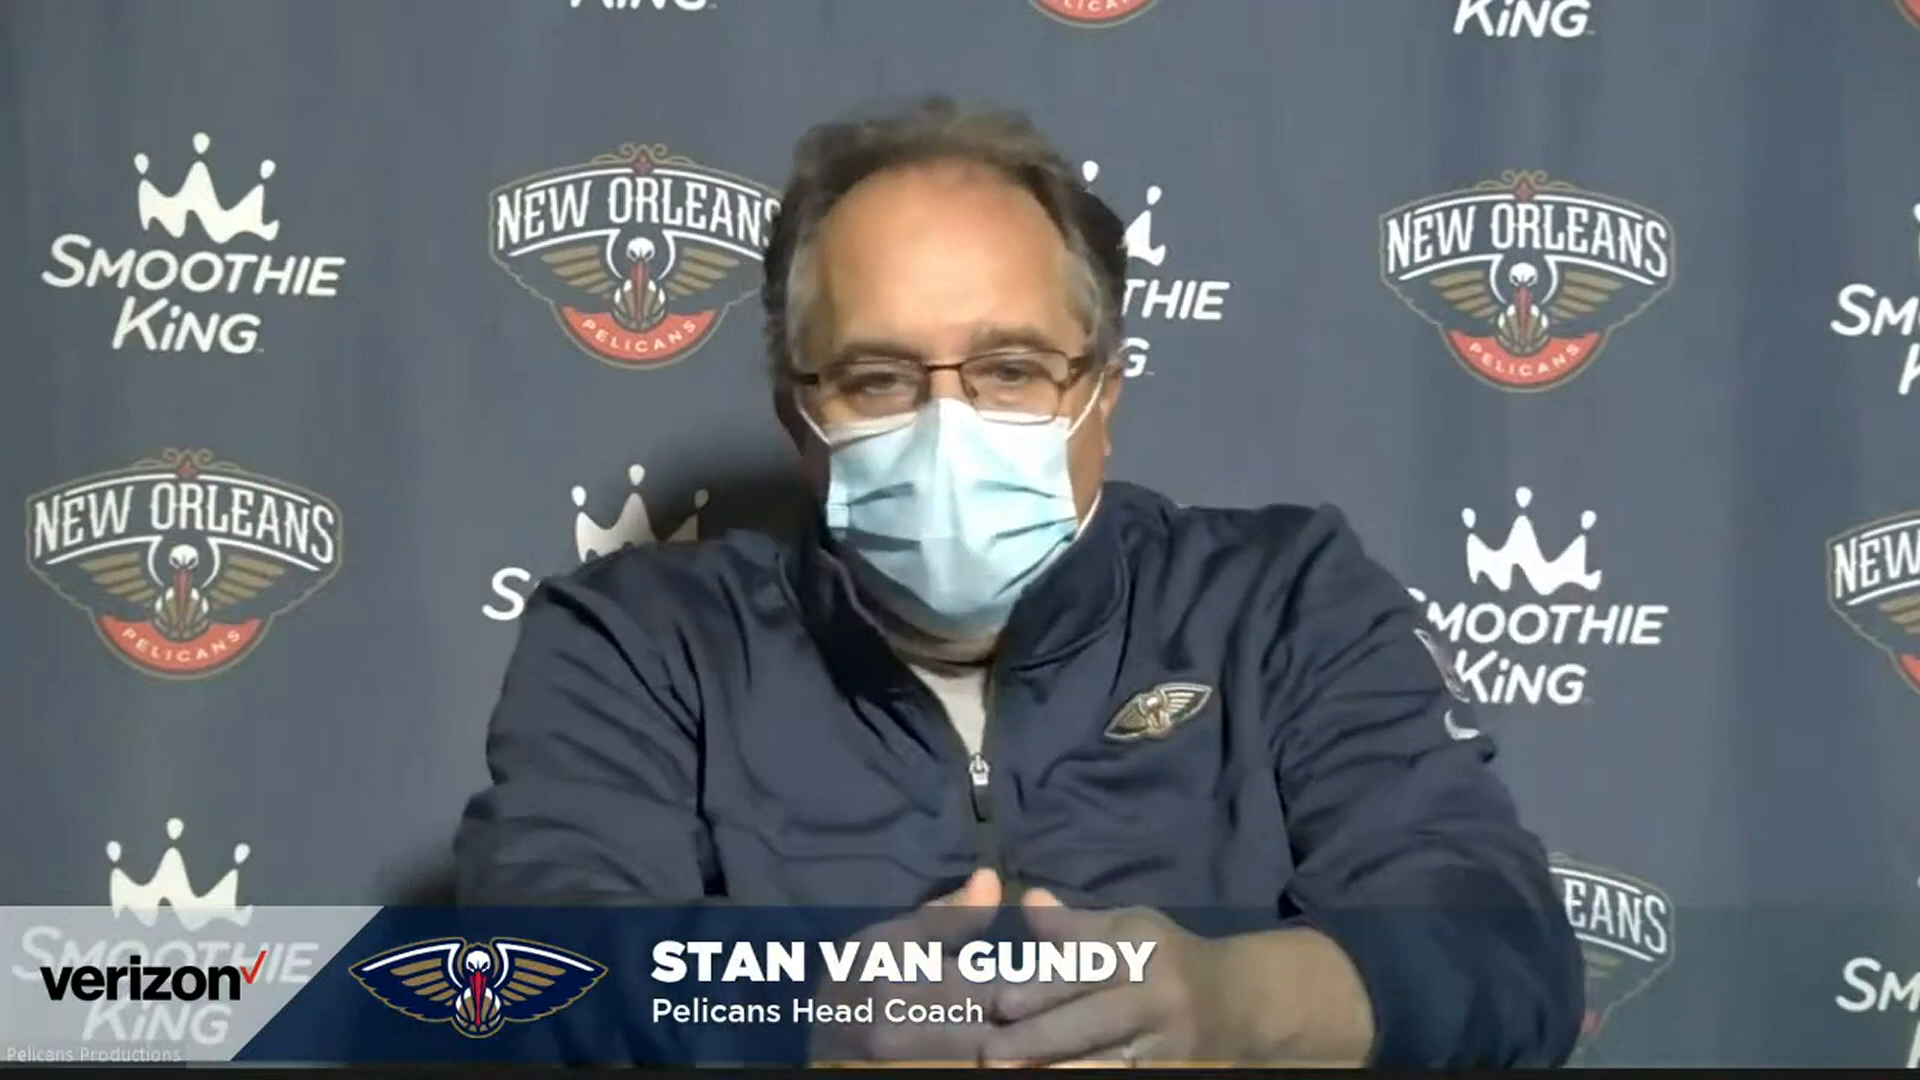 Pelicans-Kings Postgame Interview: Stan Van Gundy 1-17-21